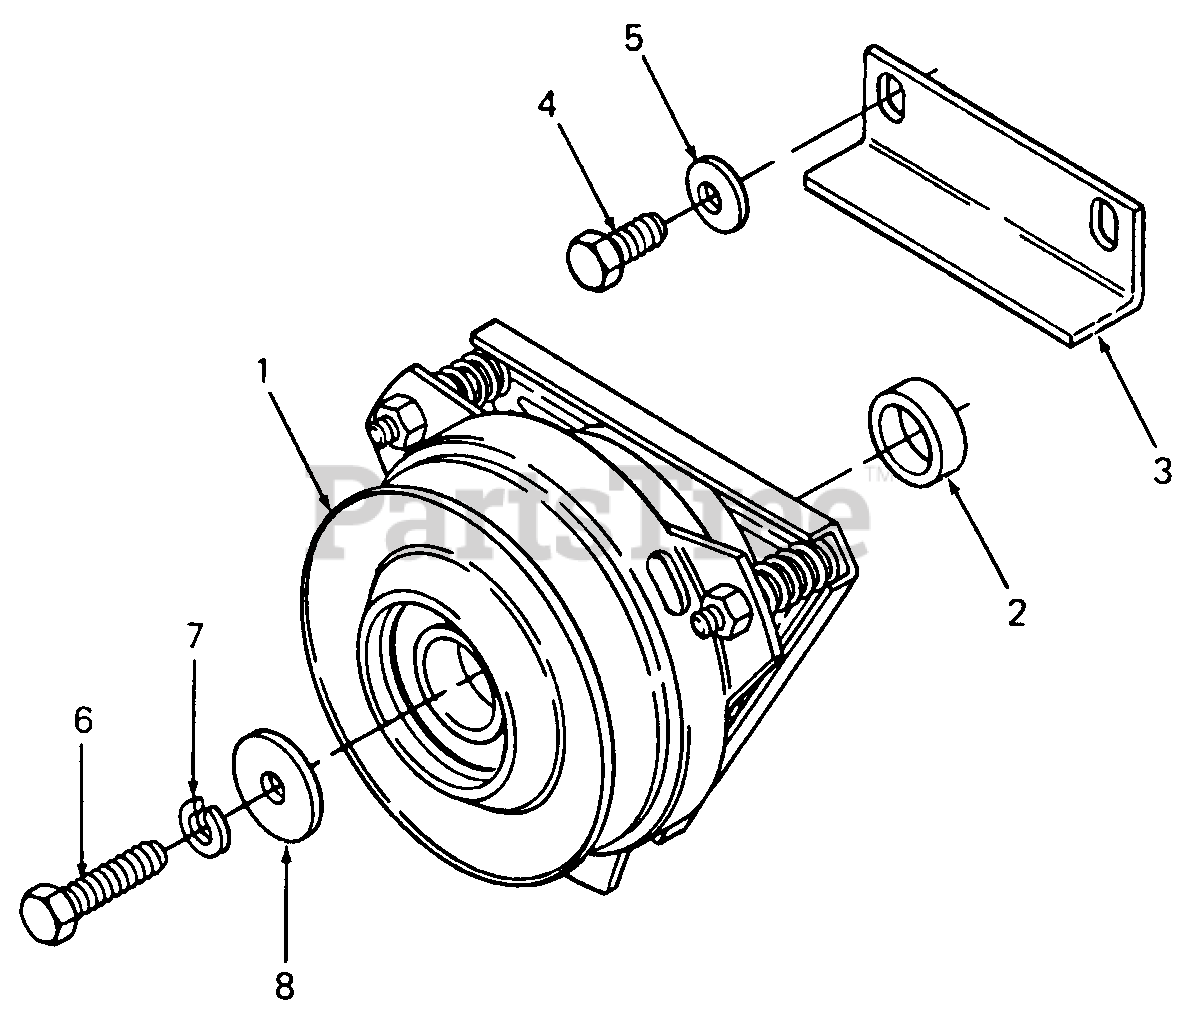 Cub Cadet Parts On The Pto Clutch Diagram For 142